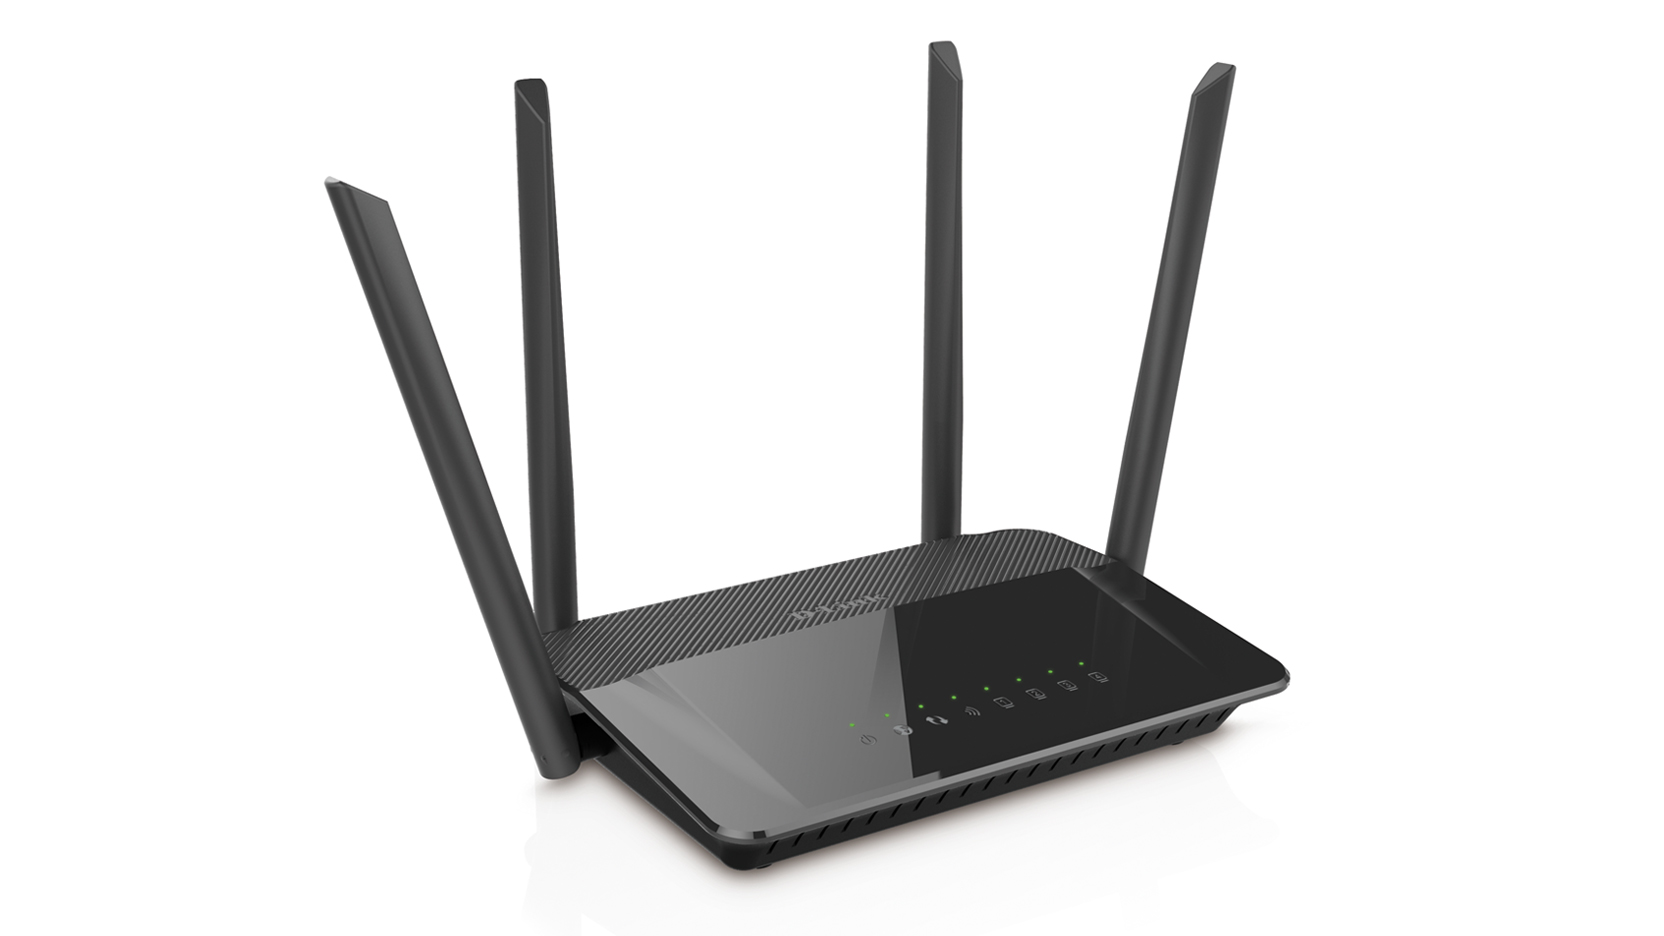 D link dir 822bna ac1200 wireless dual band fast ethernet router d link routers greentooth Gallery